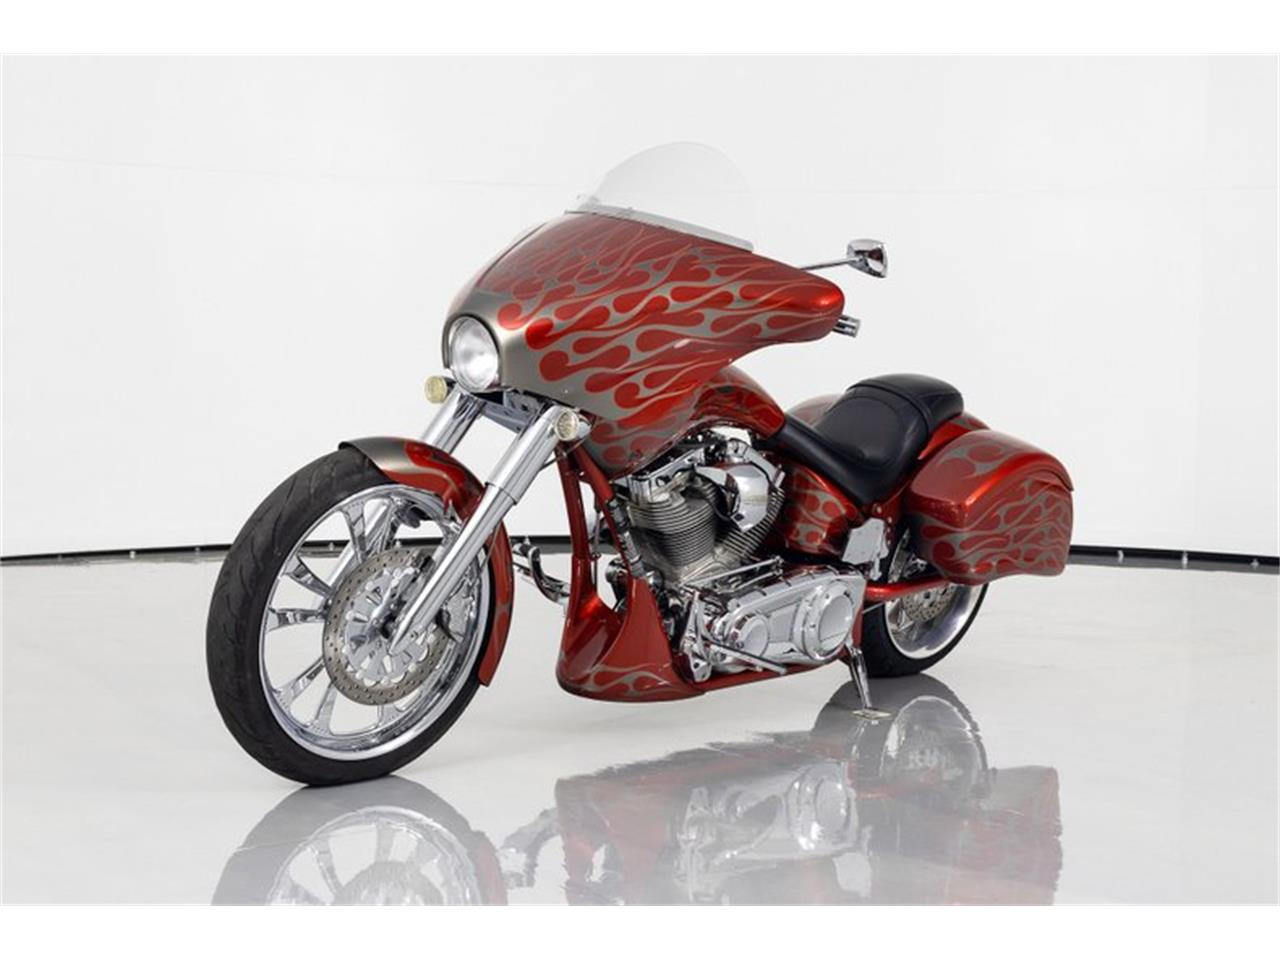 2010 Big Dog Motorcycle (CC-1419339) for sale in St. Charles, Missouri